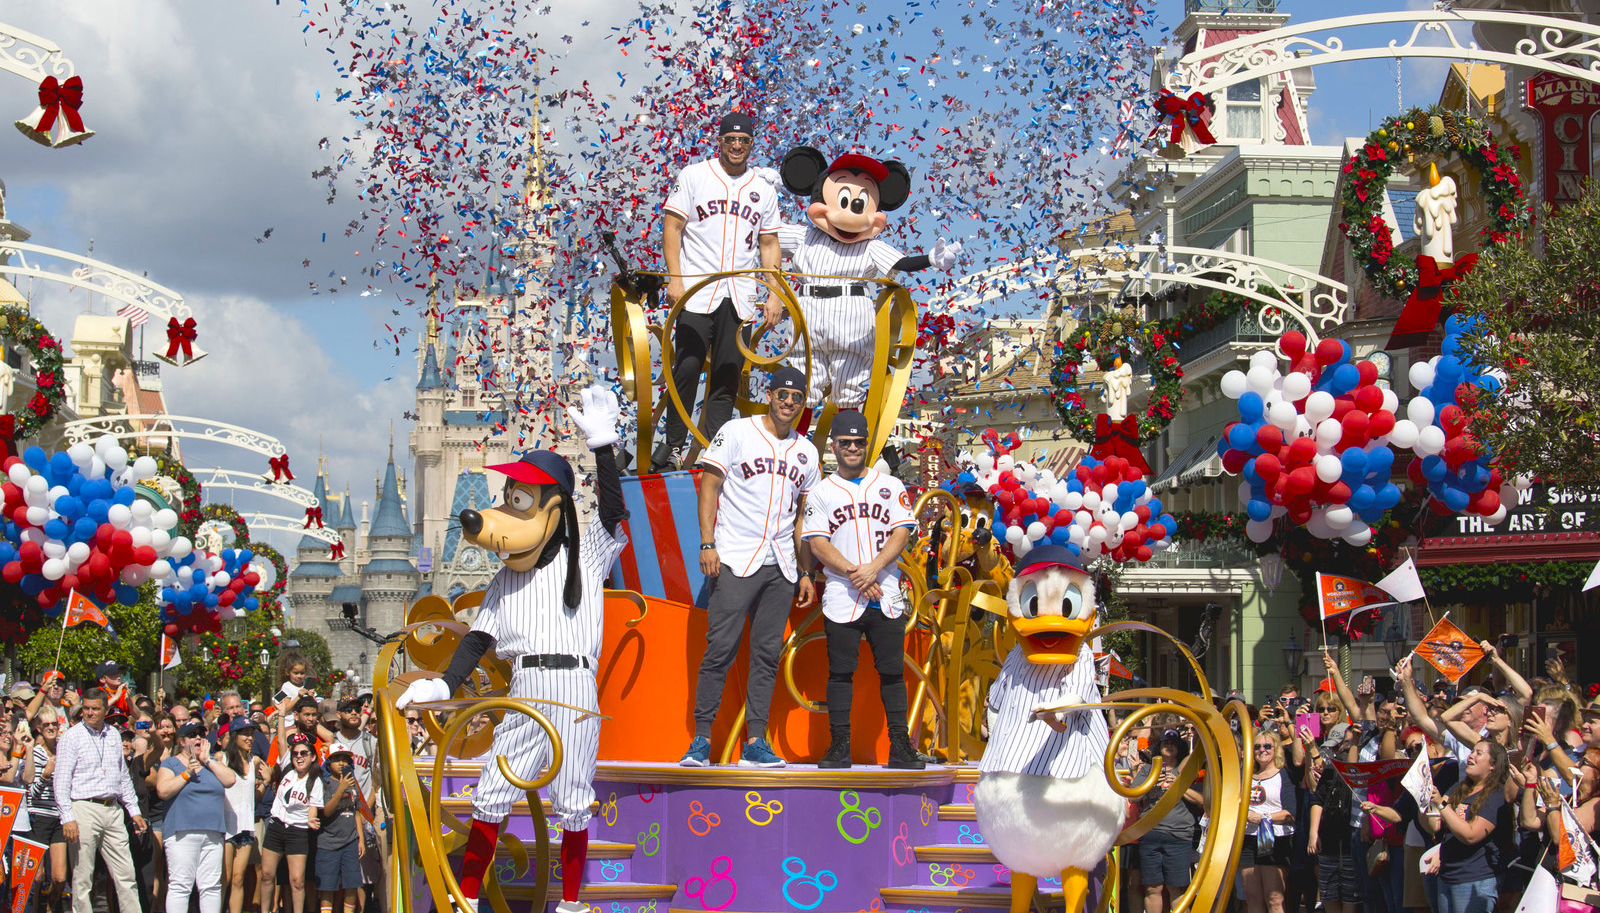 Houston Astros star players (top, then bottom l-r) World Series MVP George Springer, All-Star Carlos Correa and American League batting champion Jose Altuve lead off a World Series victory parade Saturday, Nov. 4, 2017, at Magic Kingdom Park in Lake Buena Vista, Fla. The Walt Disney World Parade saluted the team's first world title in its 56-year history. (Gregg Newton, photographer)